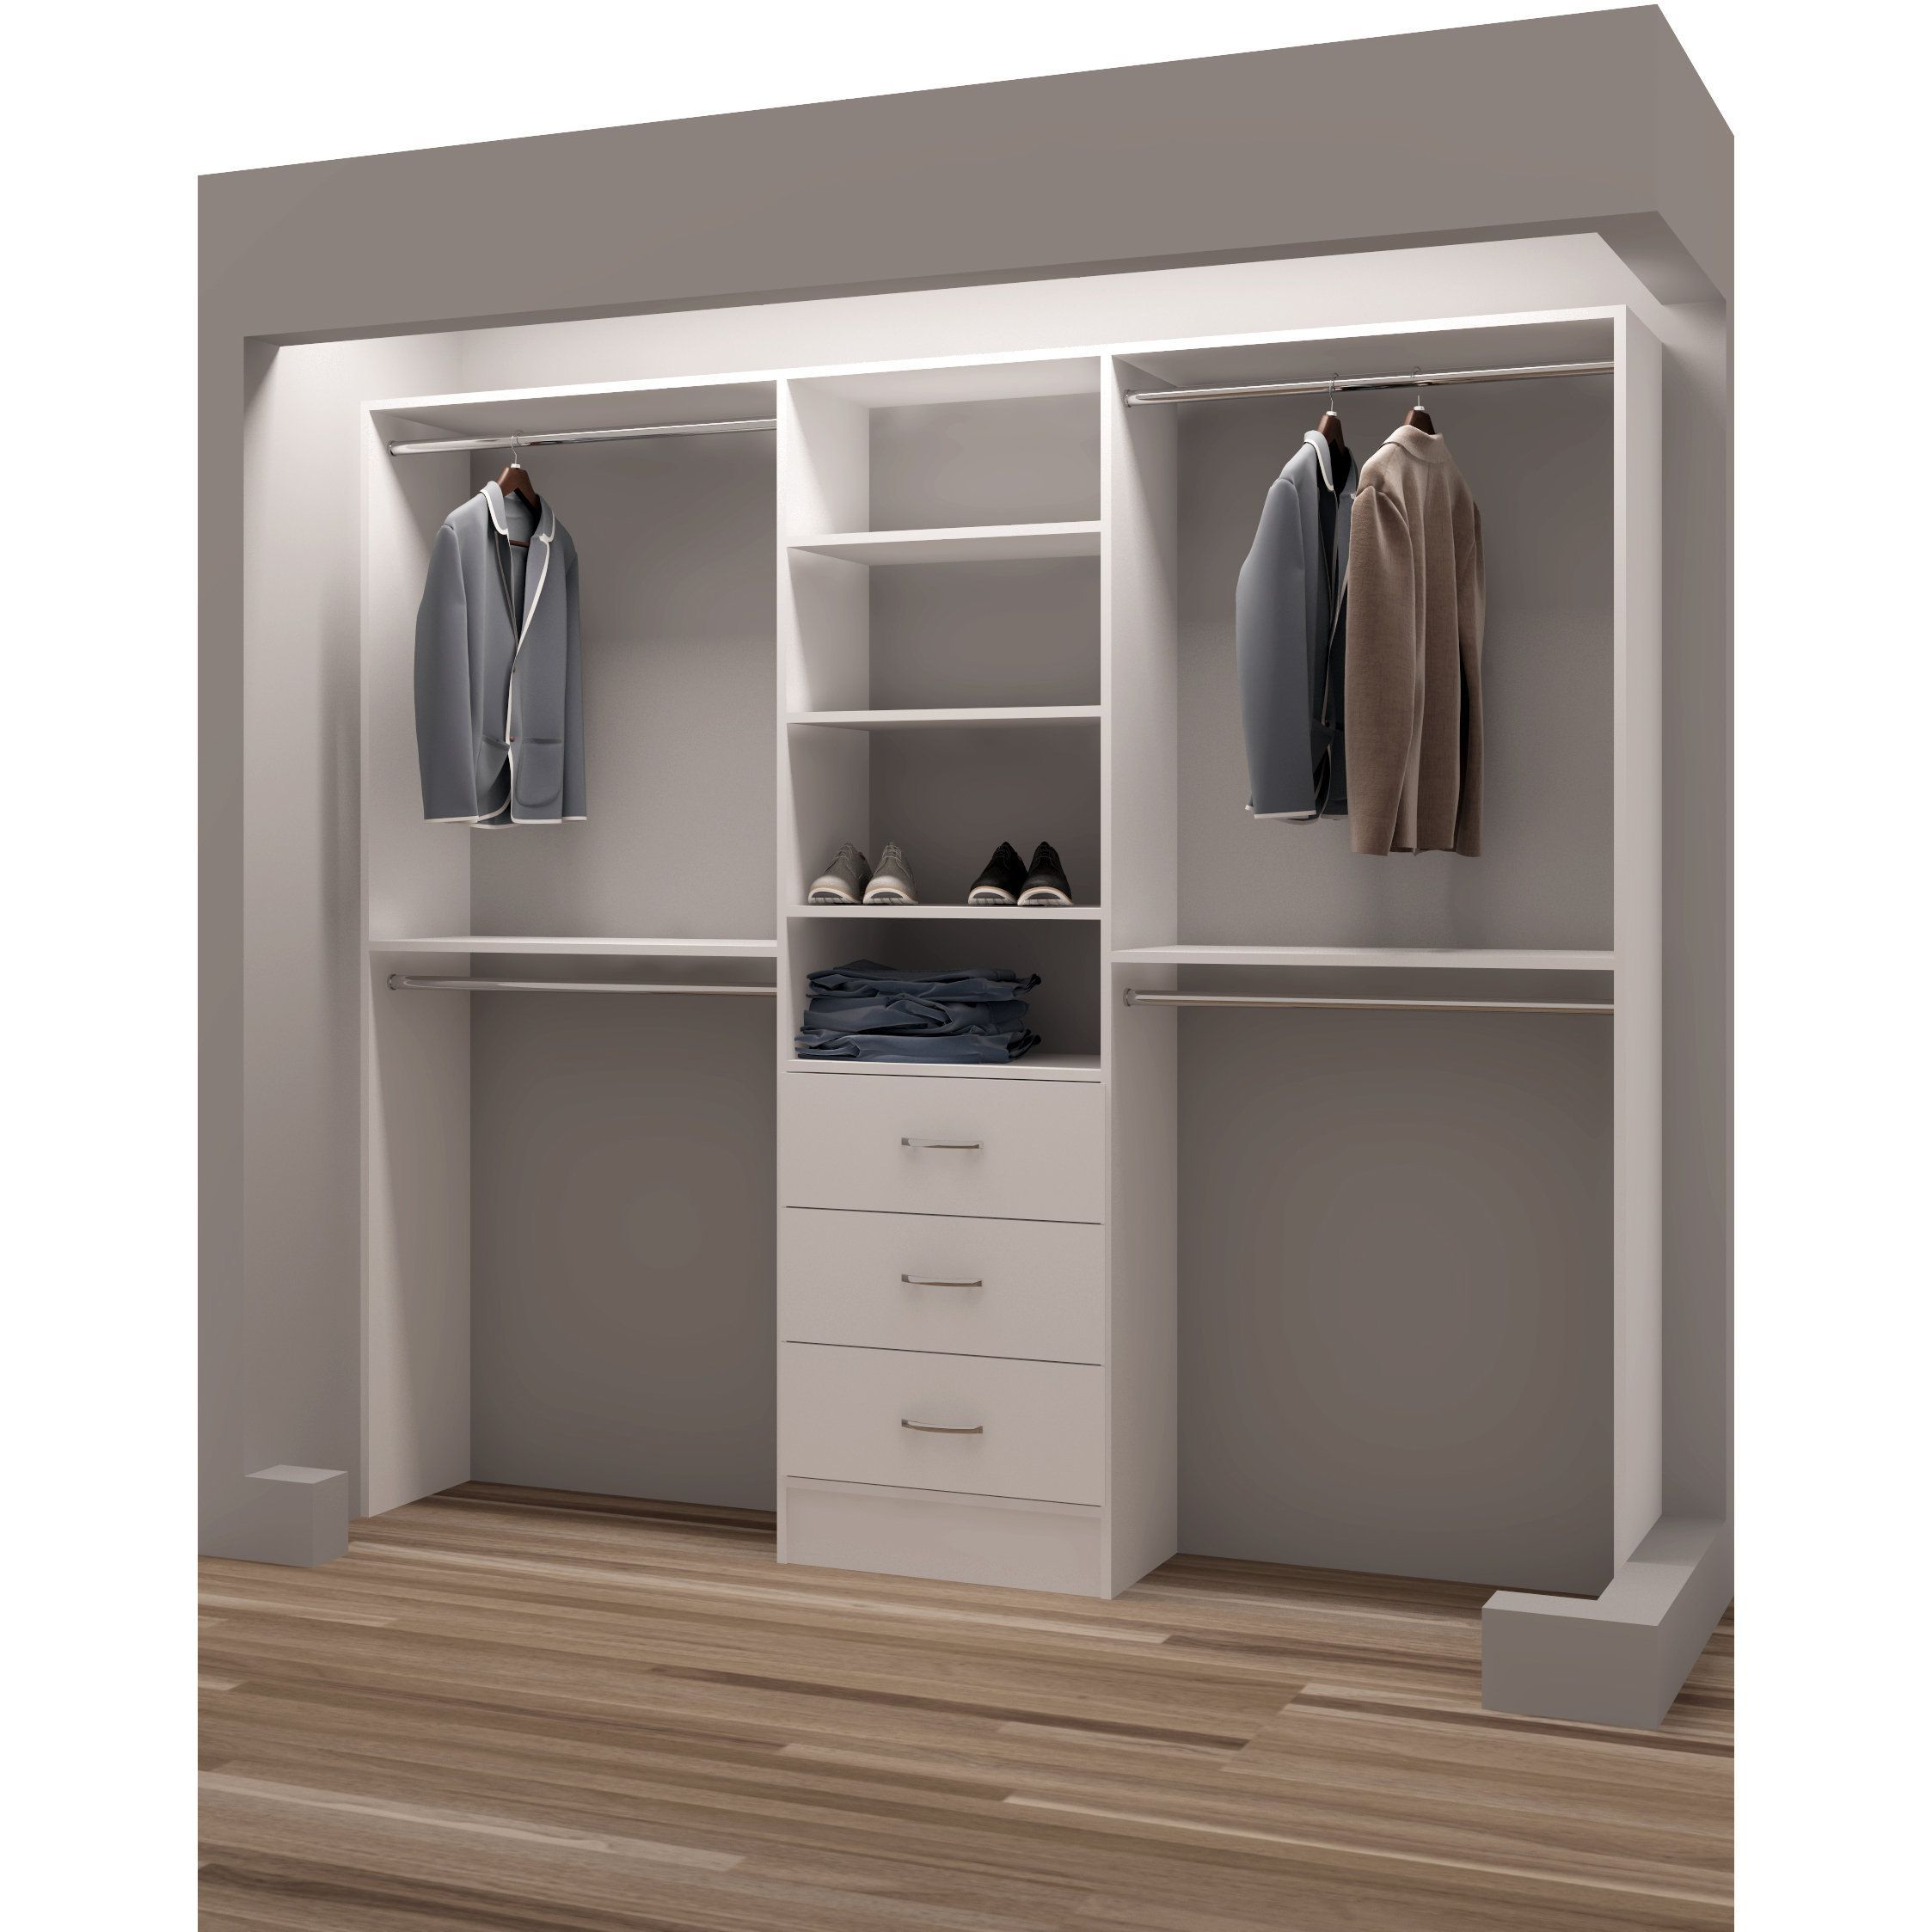 Tidysquares Classic White Wood 87 Inch Reach In Closet